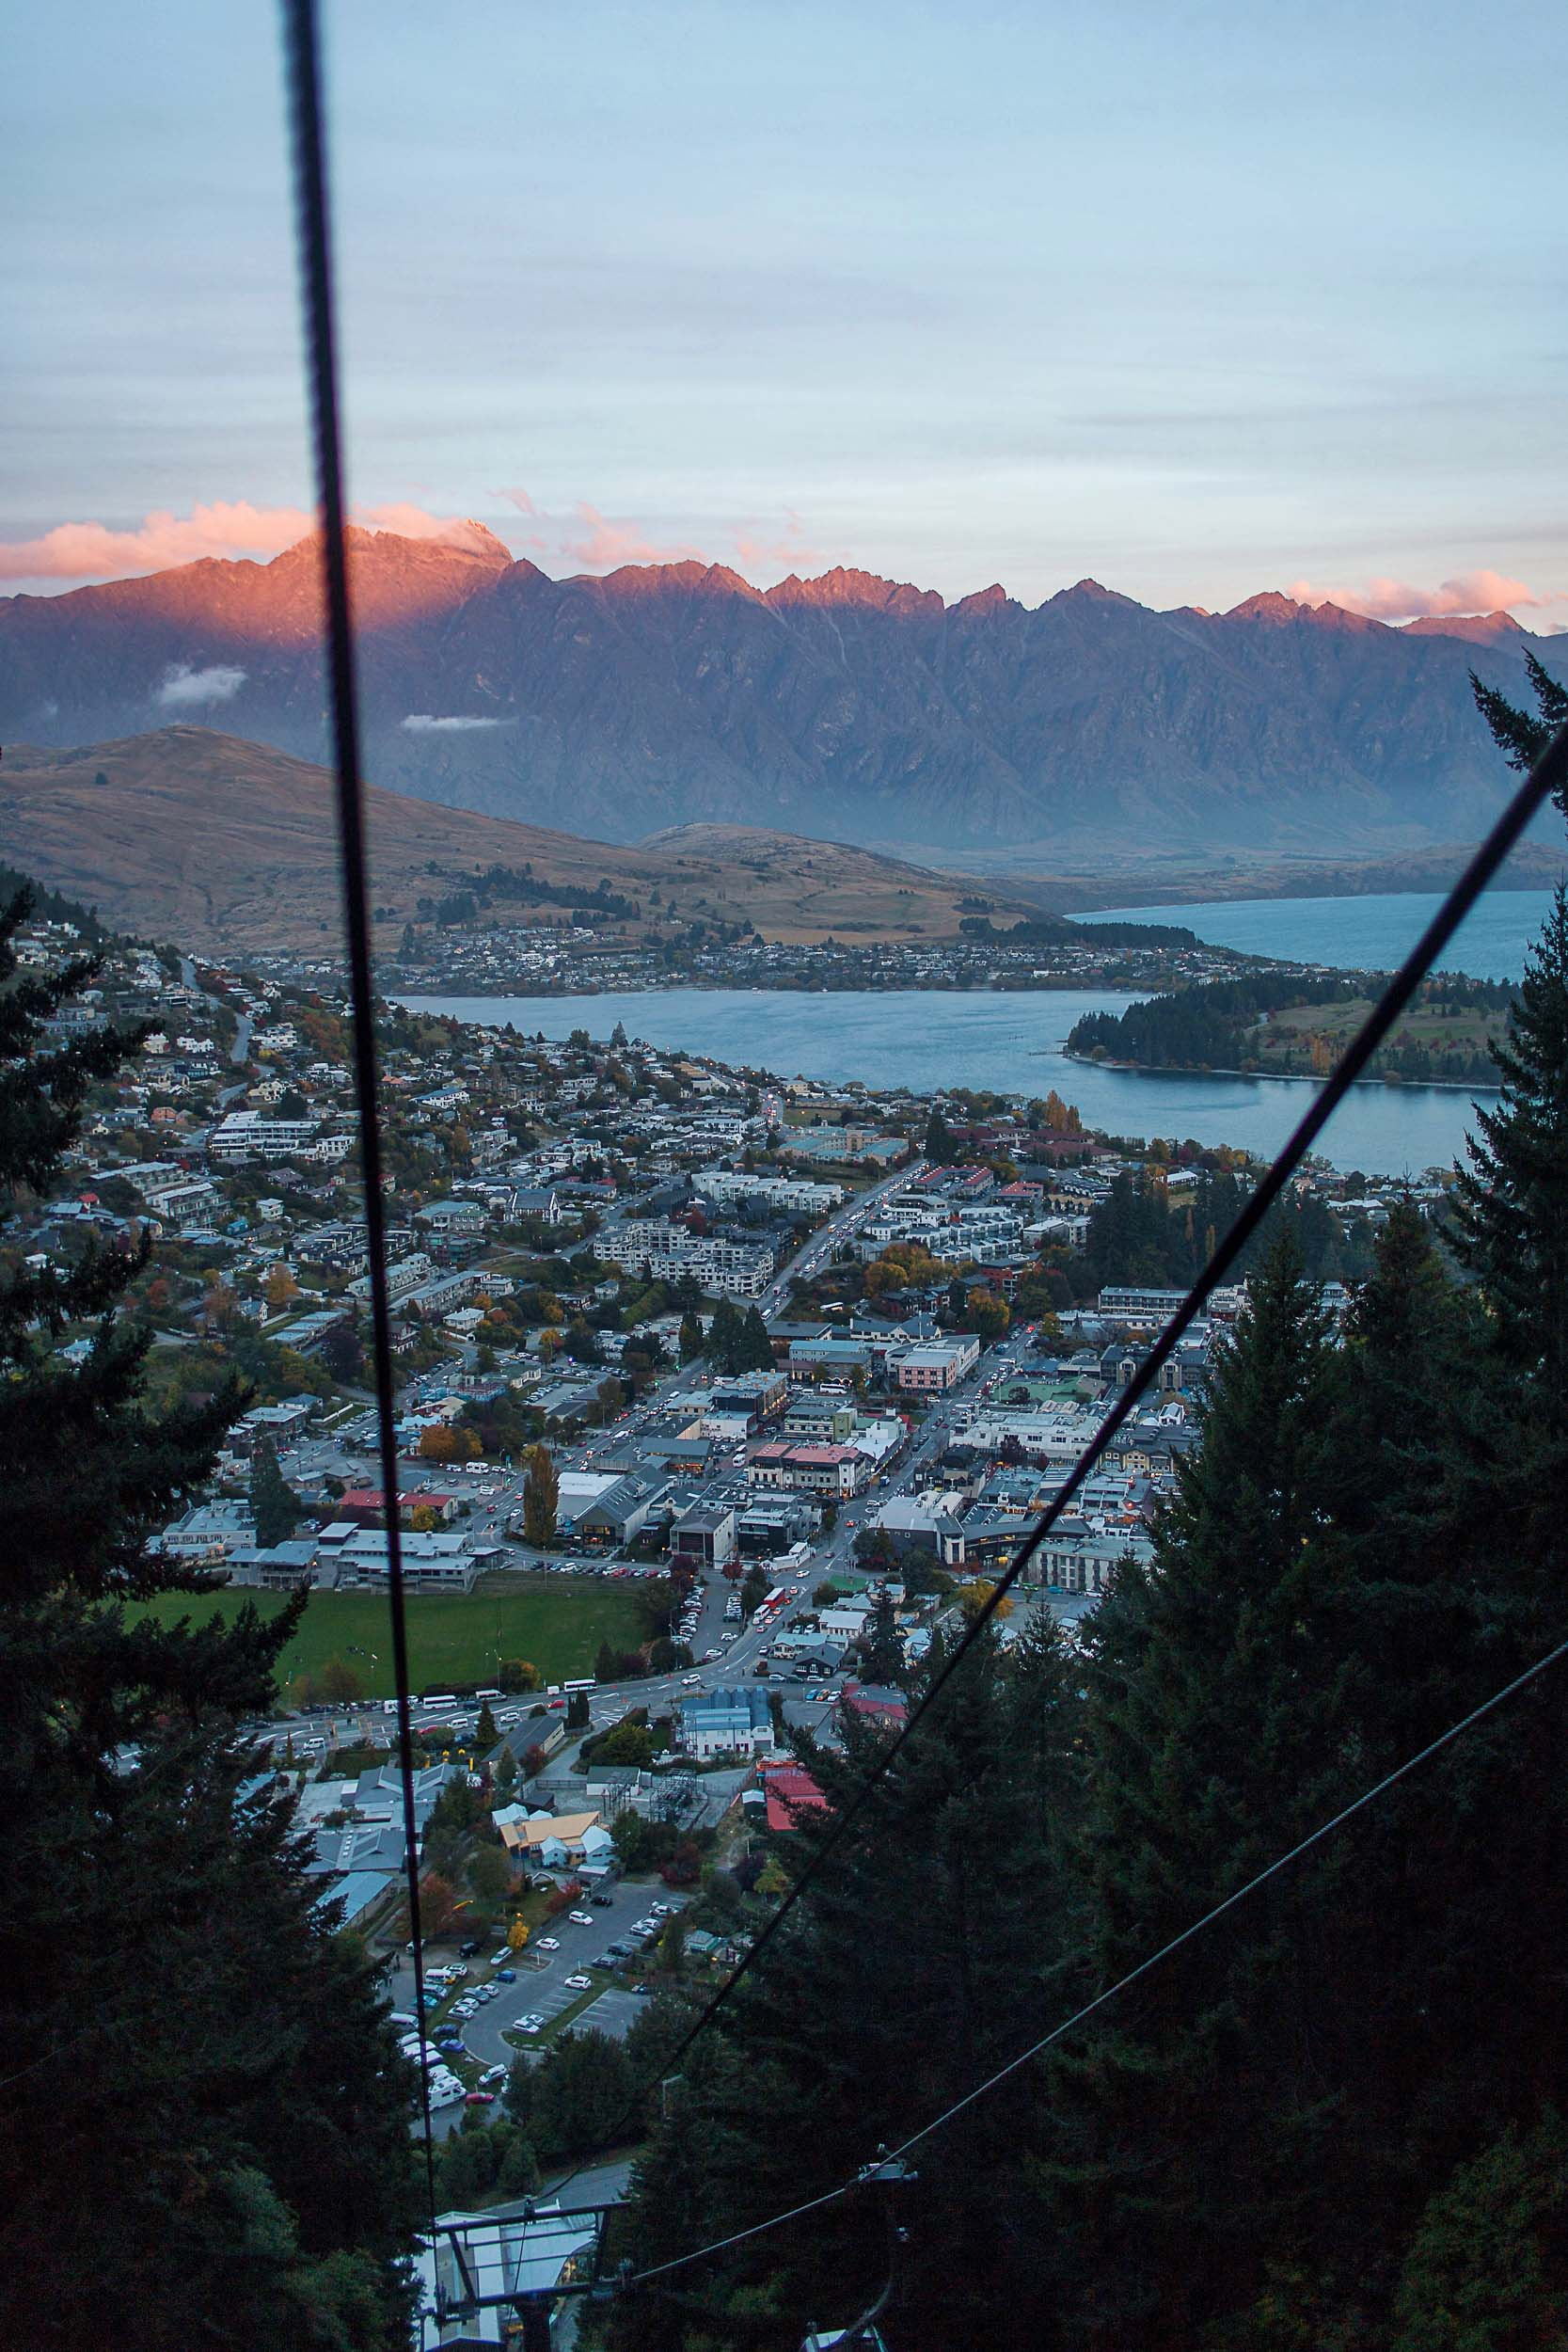 Sunset views of Queenstown coming down from the Skyline gondola